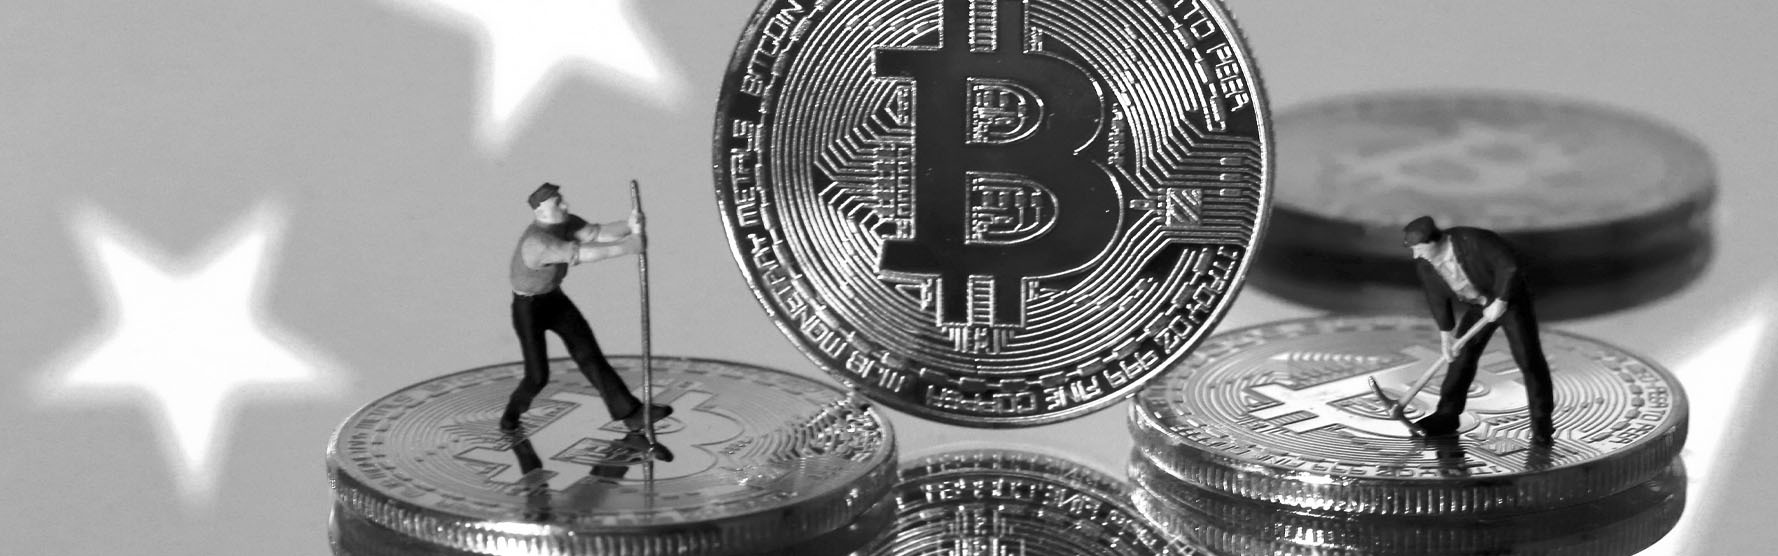 Reuters Report: China announces cryptocurrency ban